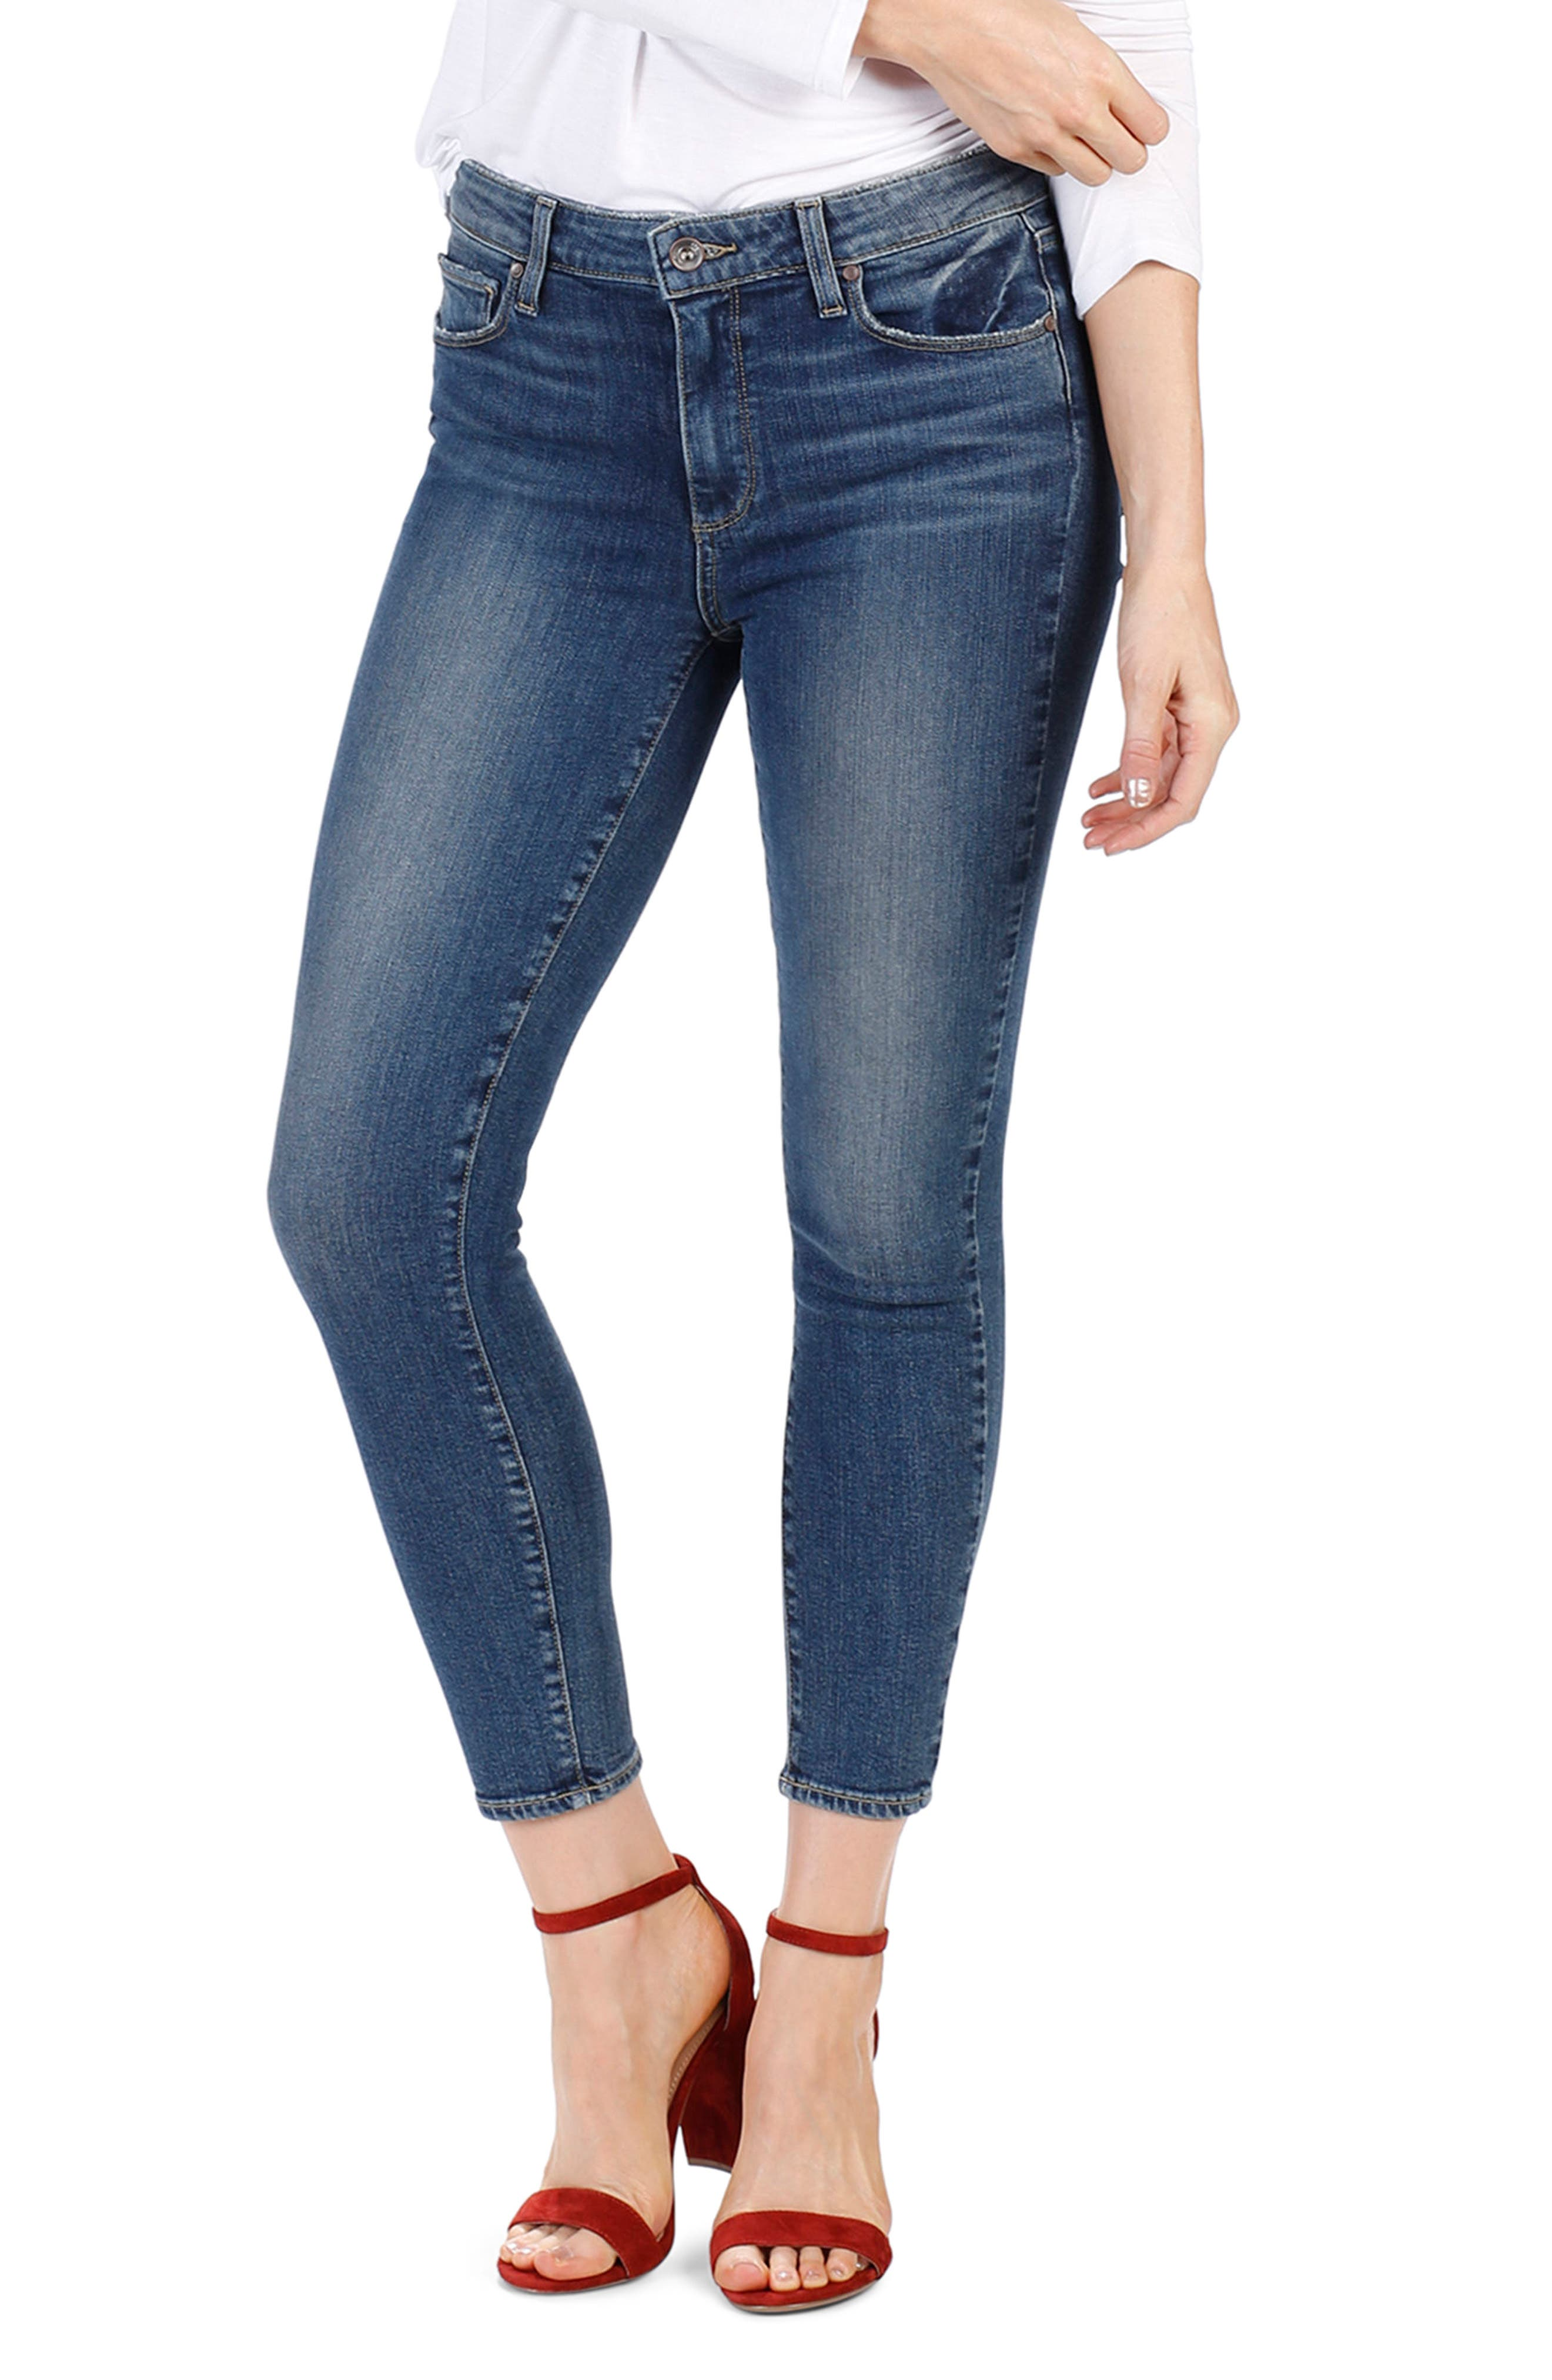 Hoxton High Waist Crop Skinny Jeans,                             Alternate thumbnail 2, color,                             400